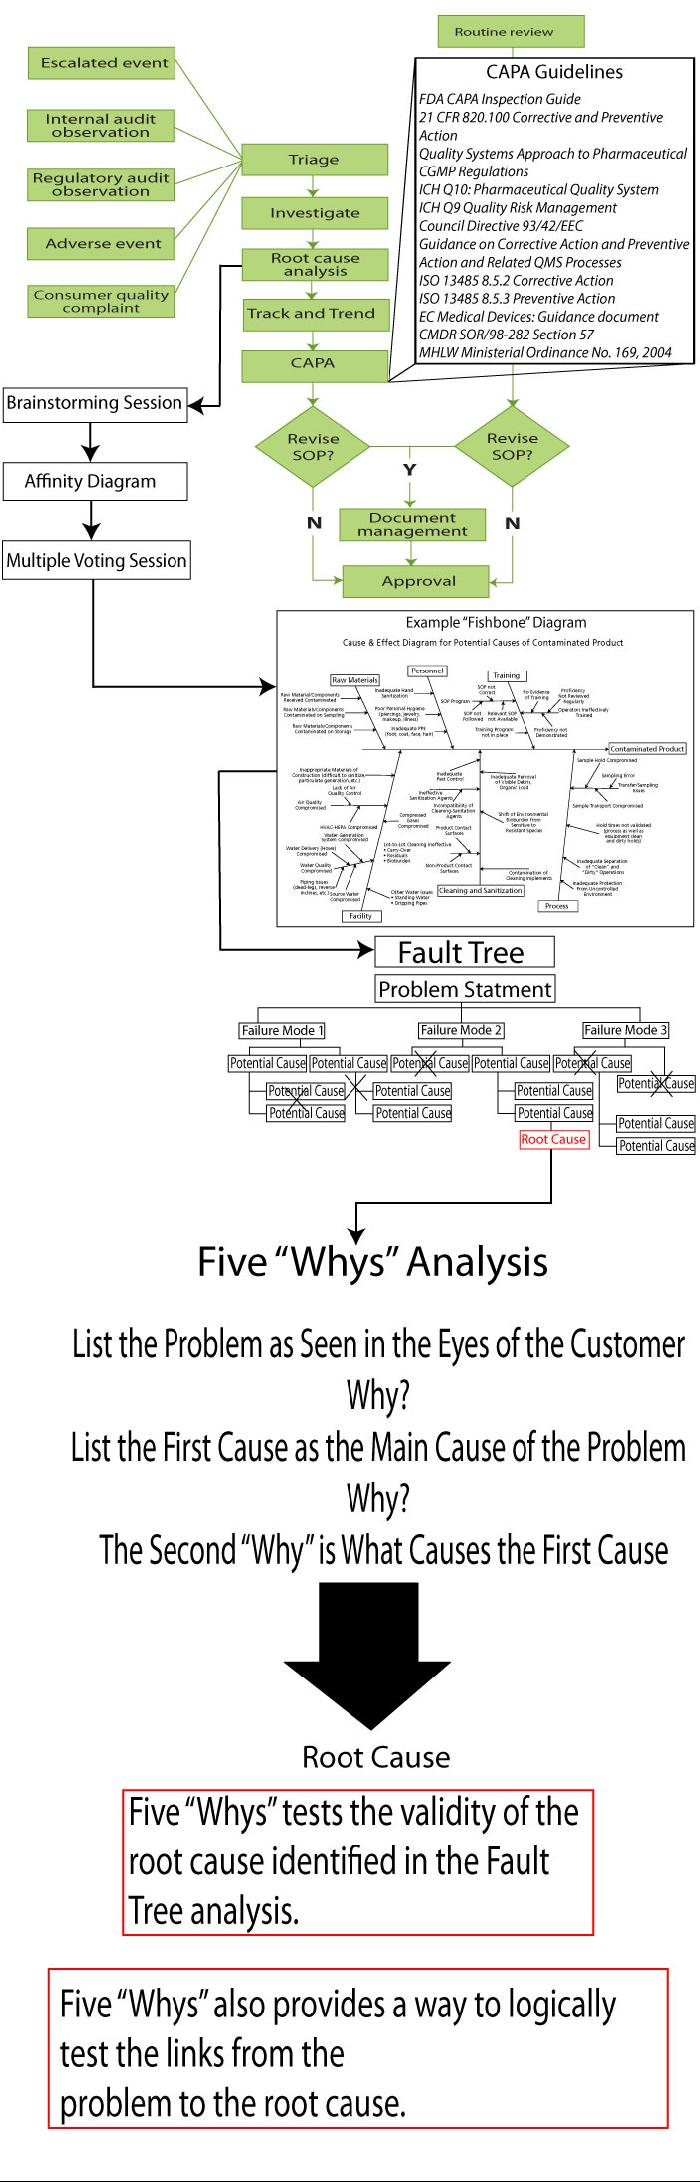 Capas root cause analysis and product complaints ivt gmp fda fy2012 inspection deviations by topic pooptronica